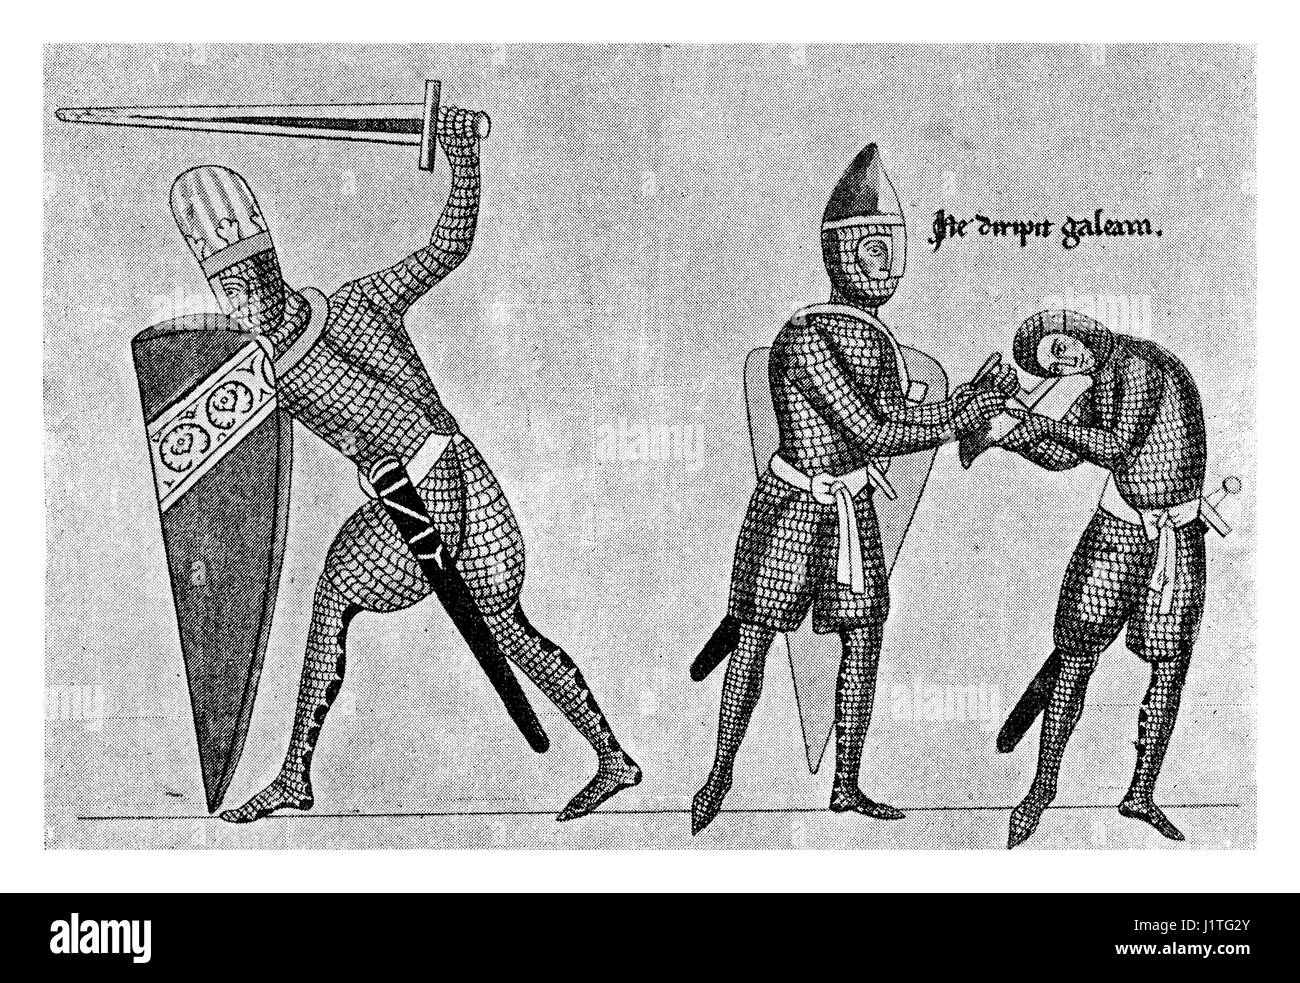 XII century: weapons and armours, soldiers dressing - Stock Image